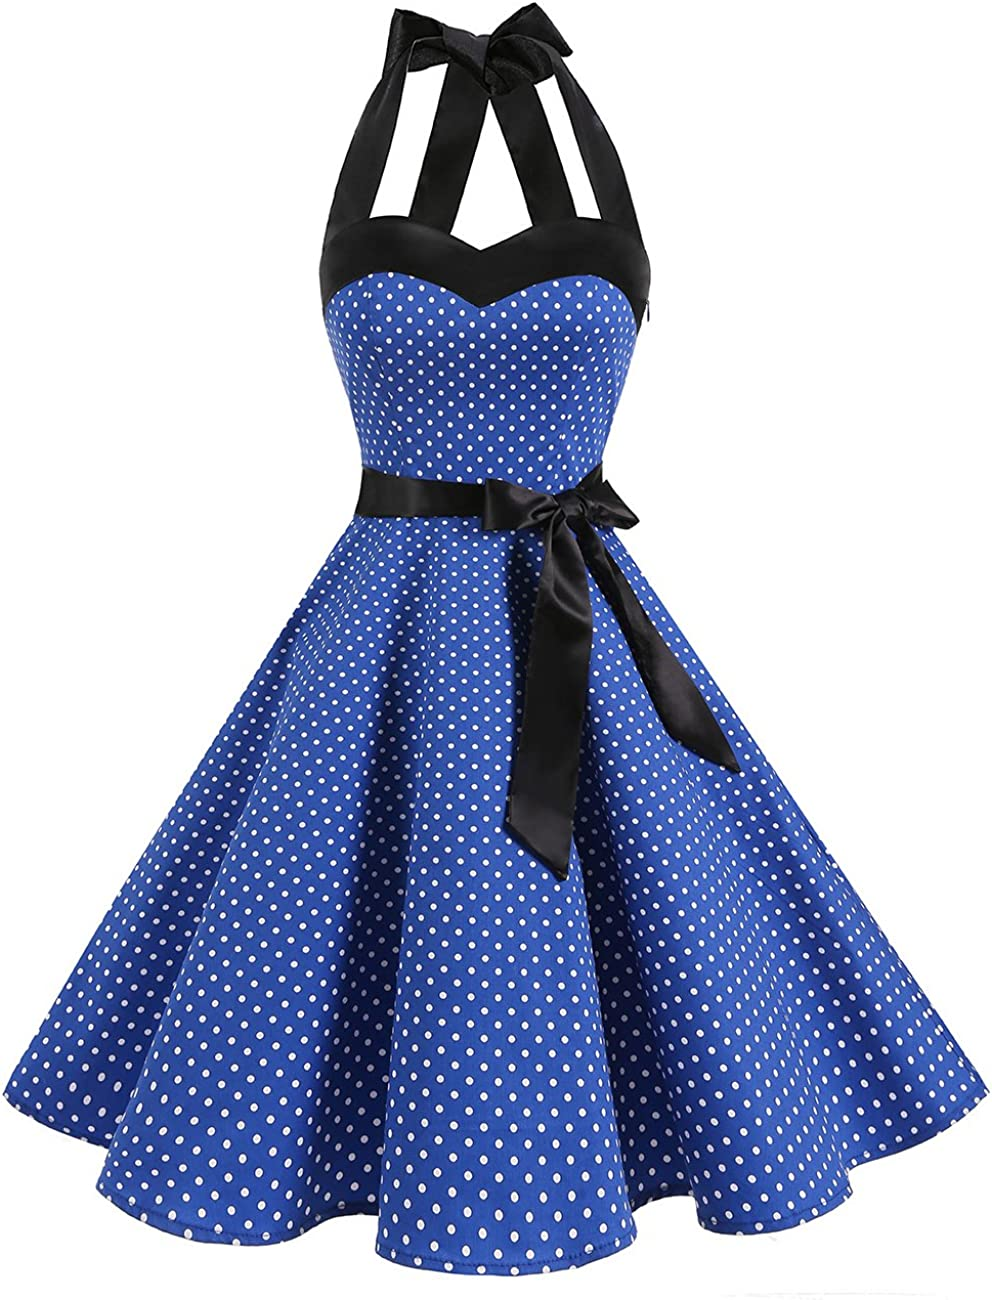 TALLA M. DRESSTELLS® Halter 50s Rockabilly Polka Dots Audrey Dress Retro Cocktail Dress Royal Blue Small White Dot M